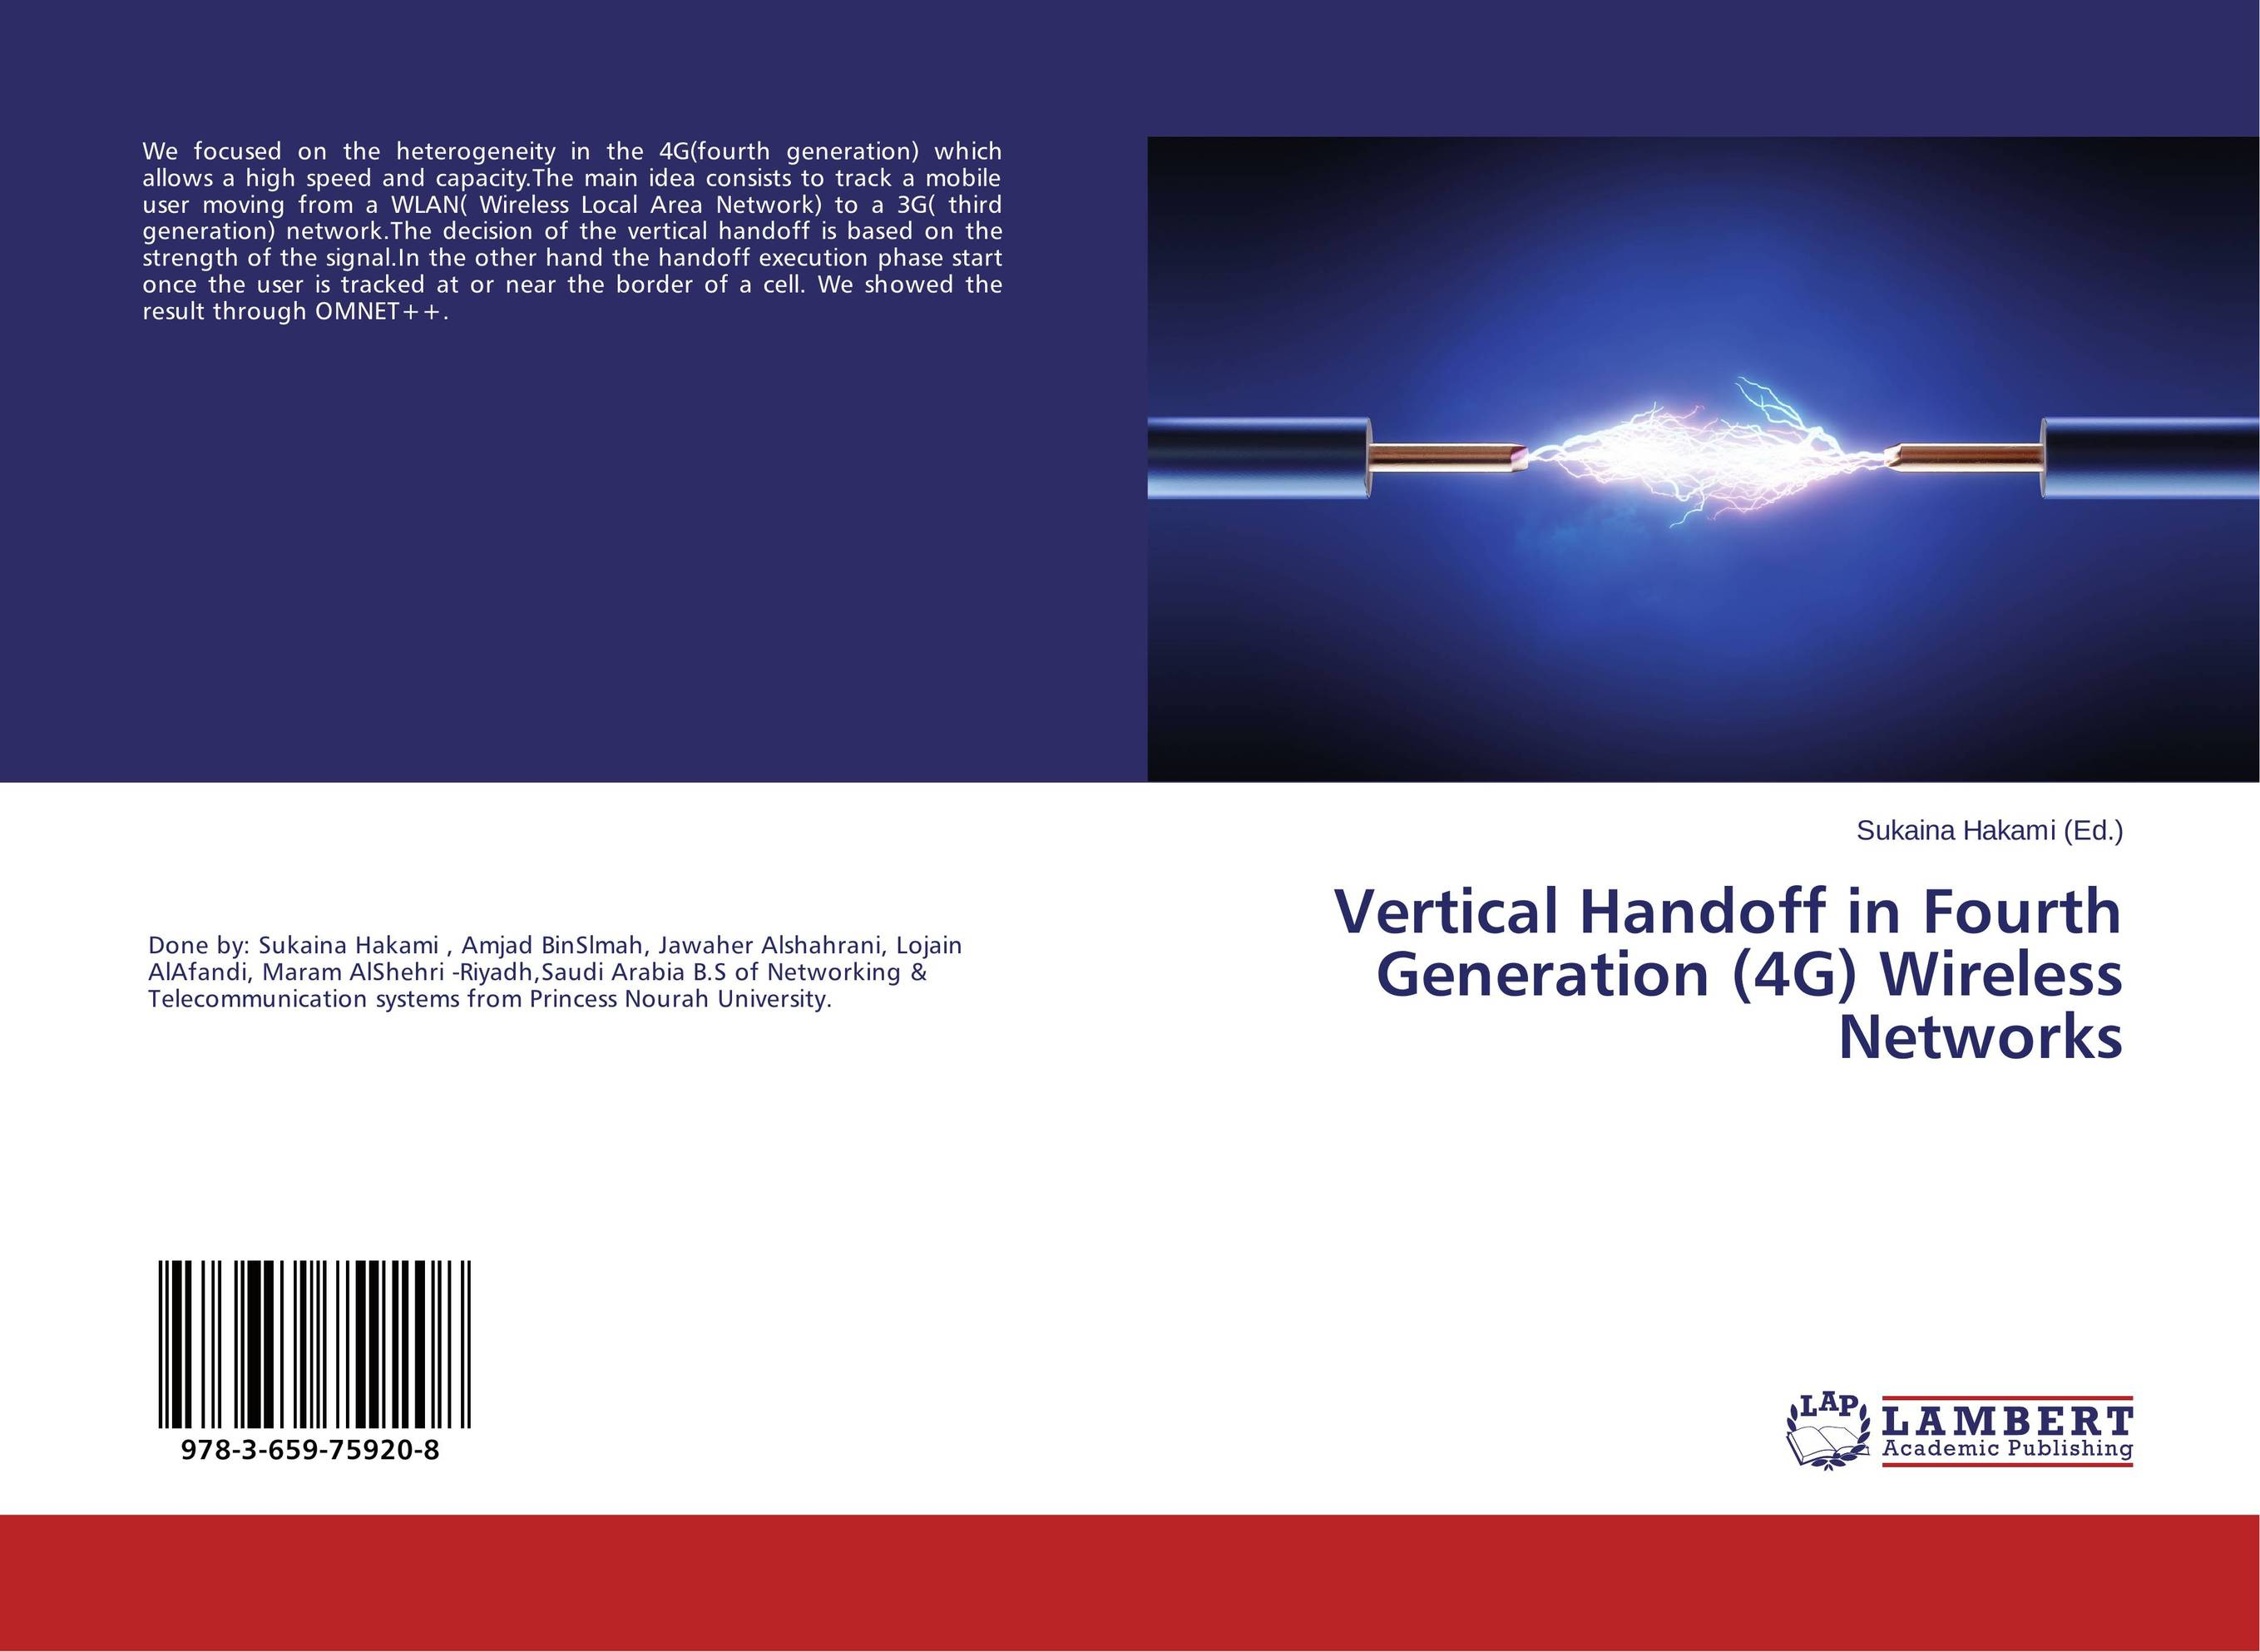 Vertical Handoff in Fourth Generation (4G) Wireless Networks the third generation of the push type of the magnetic suspension module